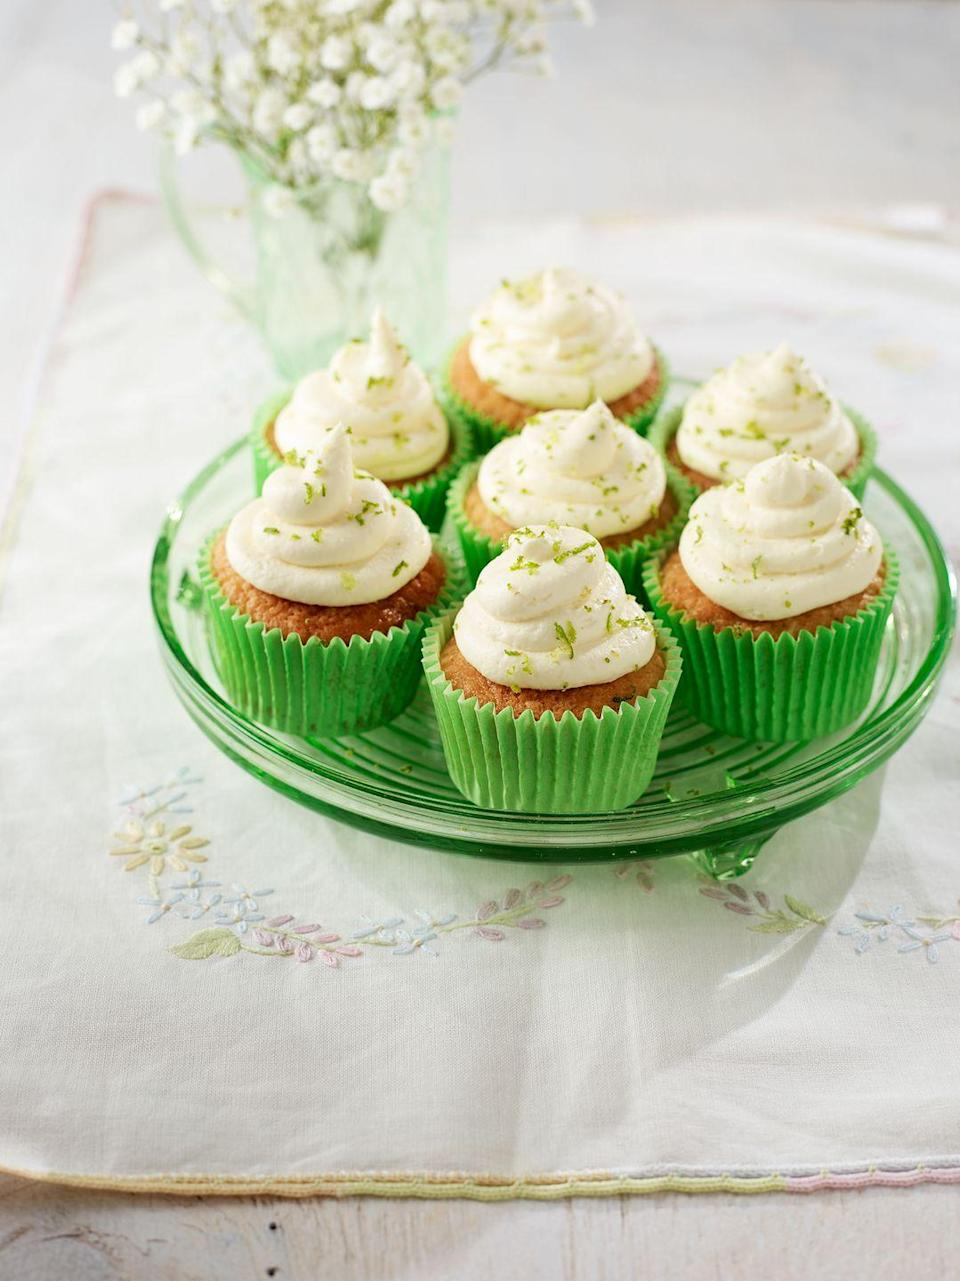 """<p>Coconut, rum and lime are a recipe for success. If you're making these for children, omit the Malibu and simmer the syrup for less time.</p><p><strong>Recipe: <a href=""""https://www.goodhousekeeping.com/uk/food/recipes/a27124854/rum-cupcakes/"""" rel=""""nofollow noopener"""" target=""""_blank"""" data-ylk=""""slk:Coconut Rum Cupcakes"""" class=""""link rapid-noclick-resp"""">Coconut Rum Cupcakes</a> </strong></p>"""